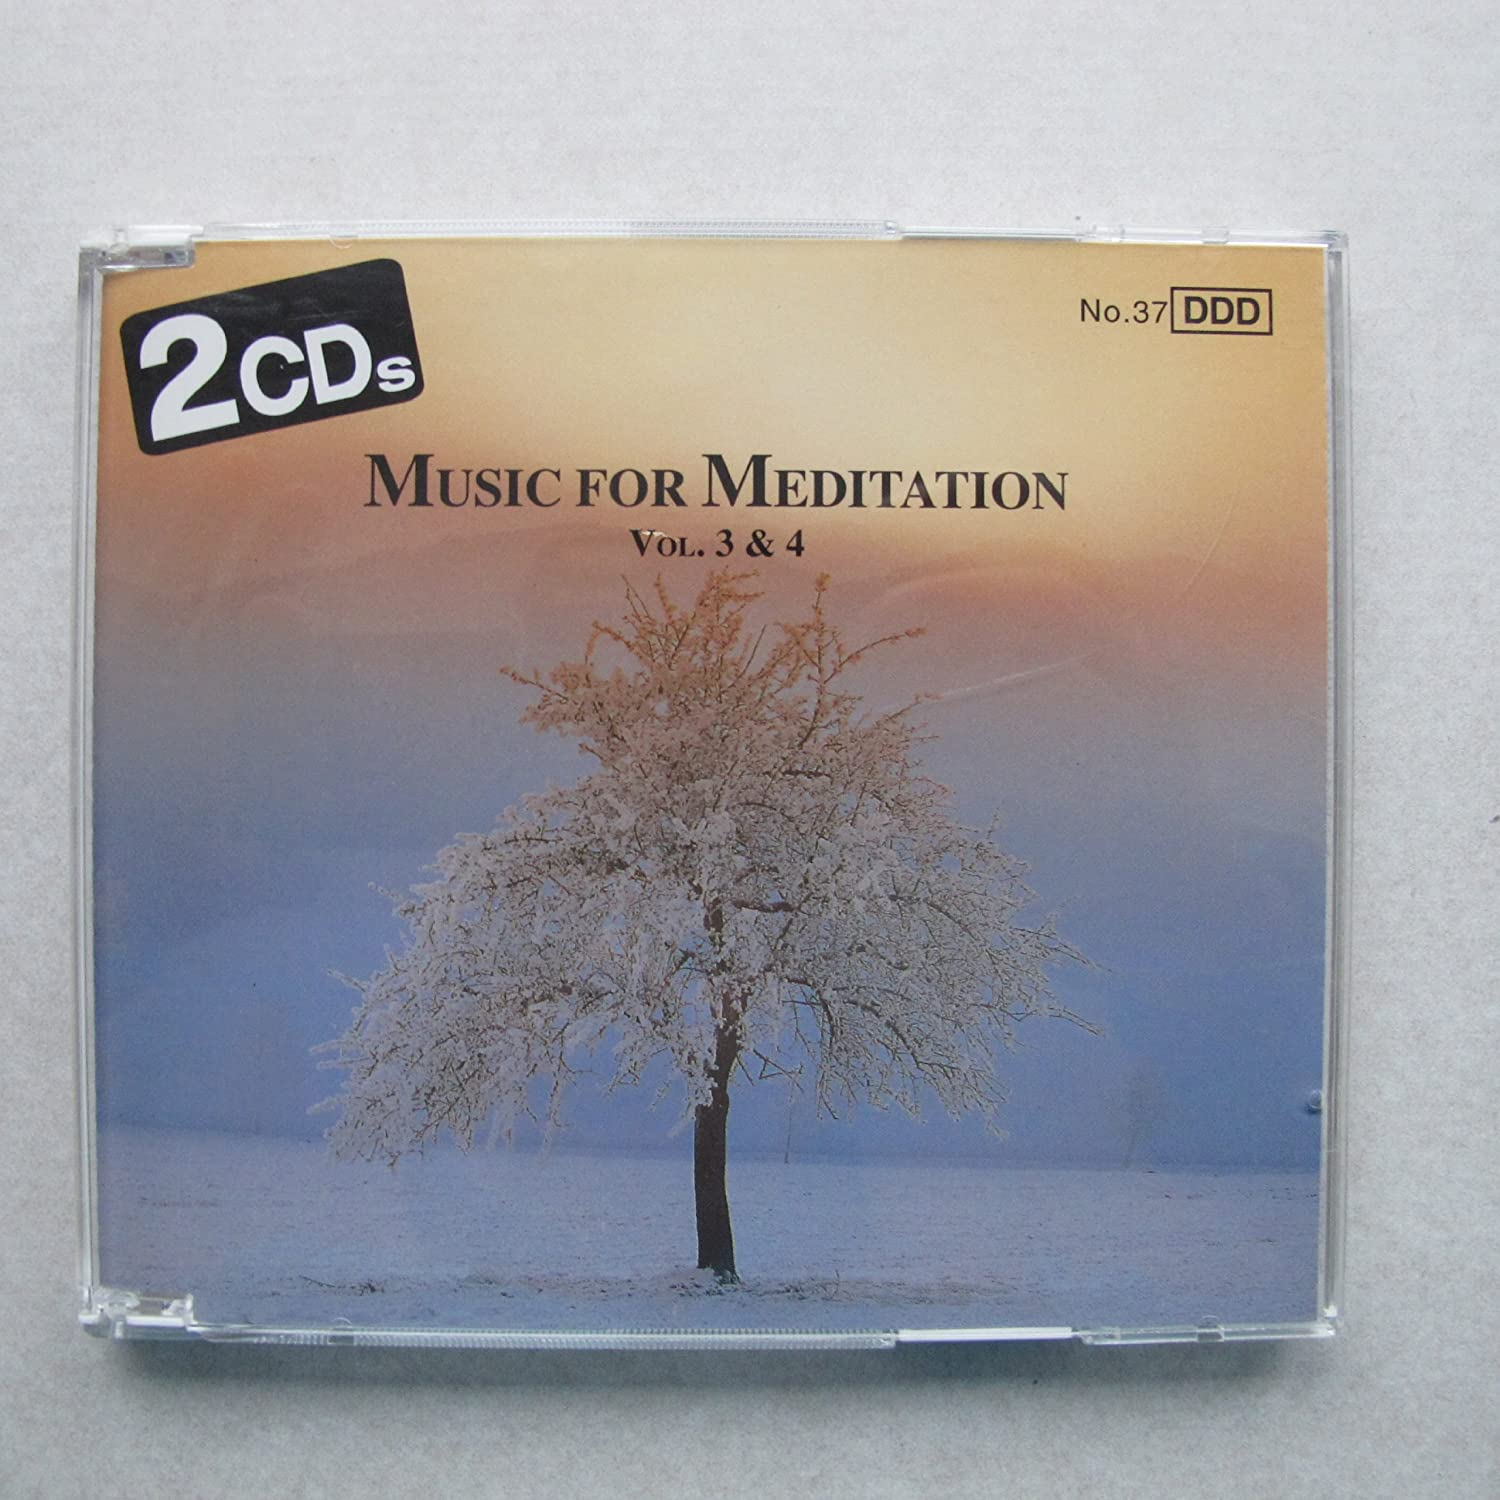 Music Luxury for Meditation. Vol. 3 store 4.